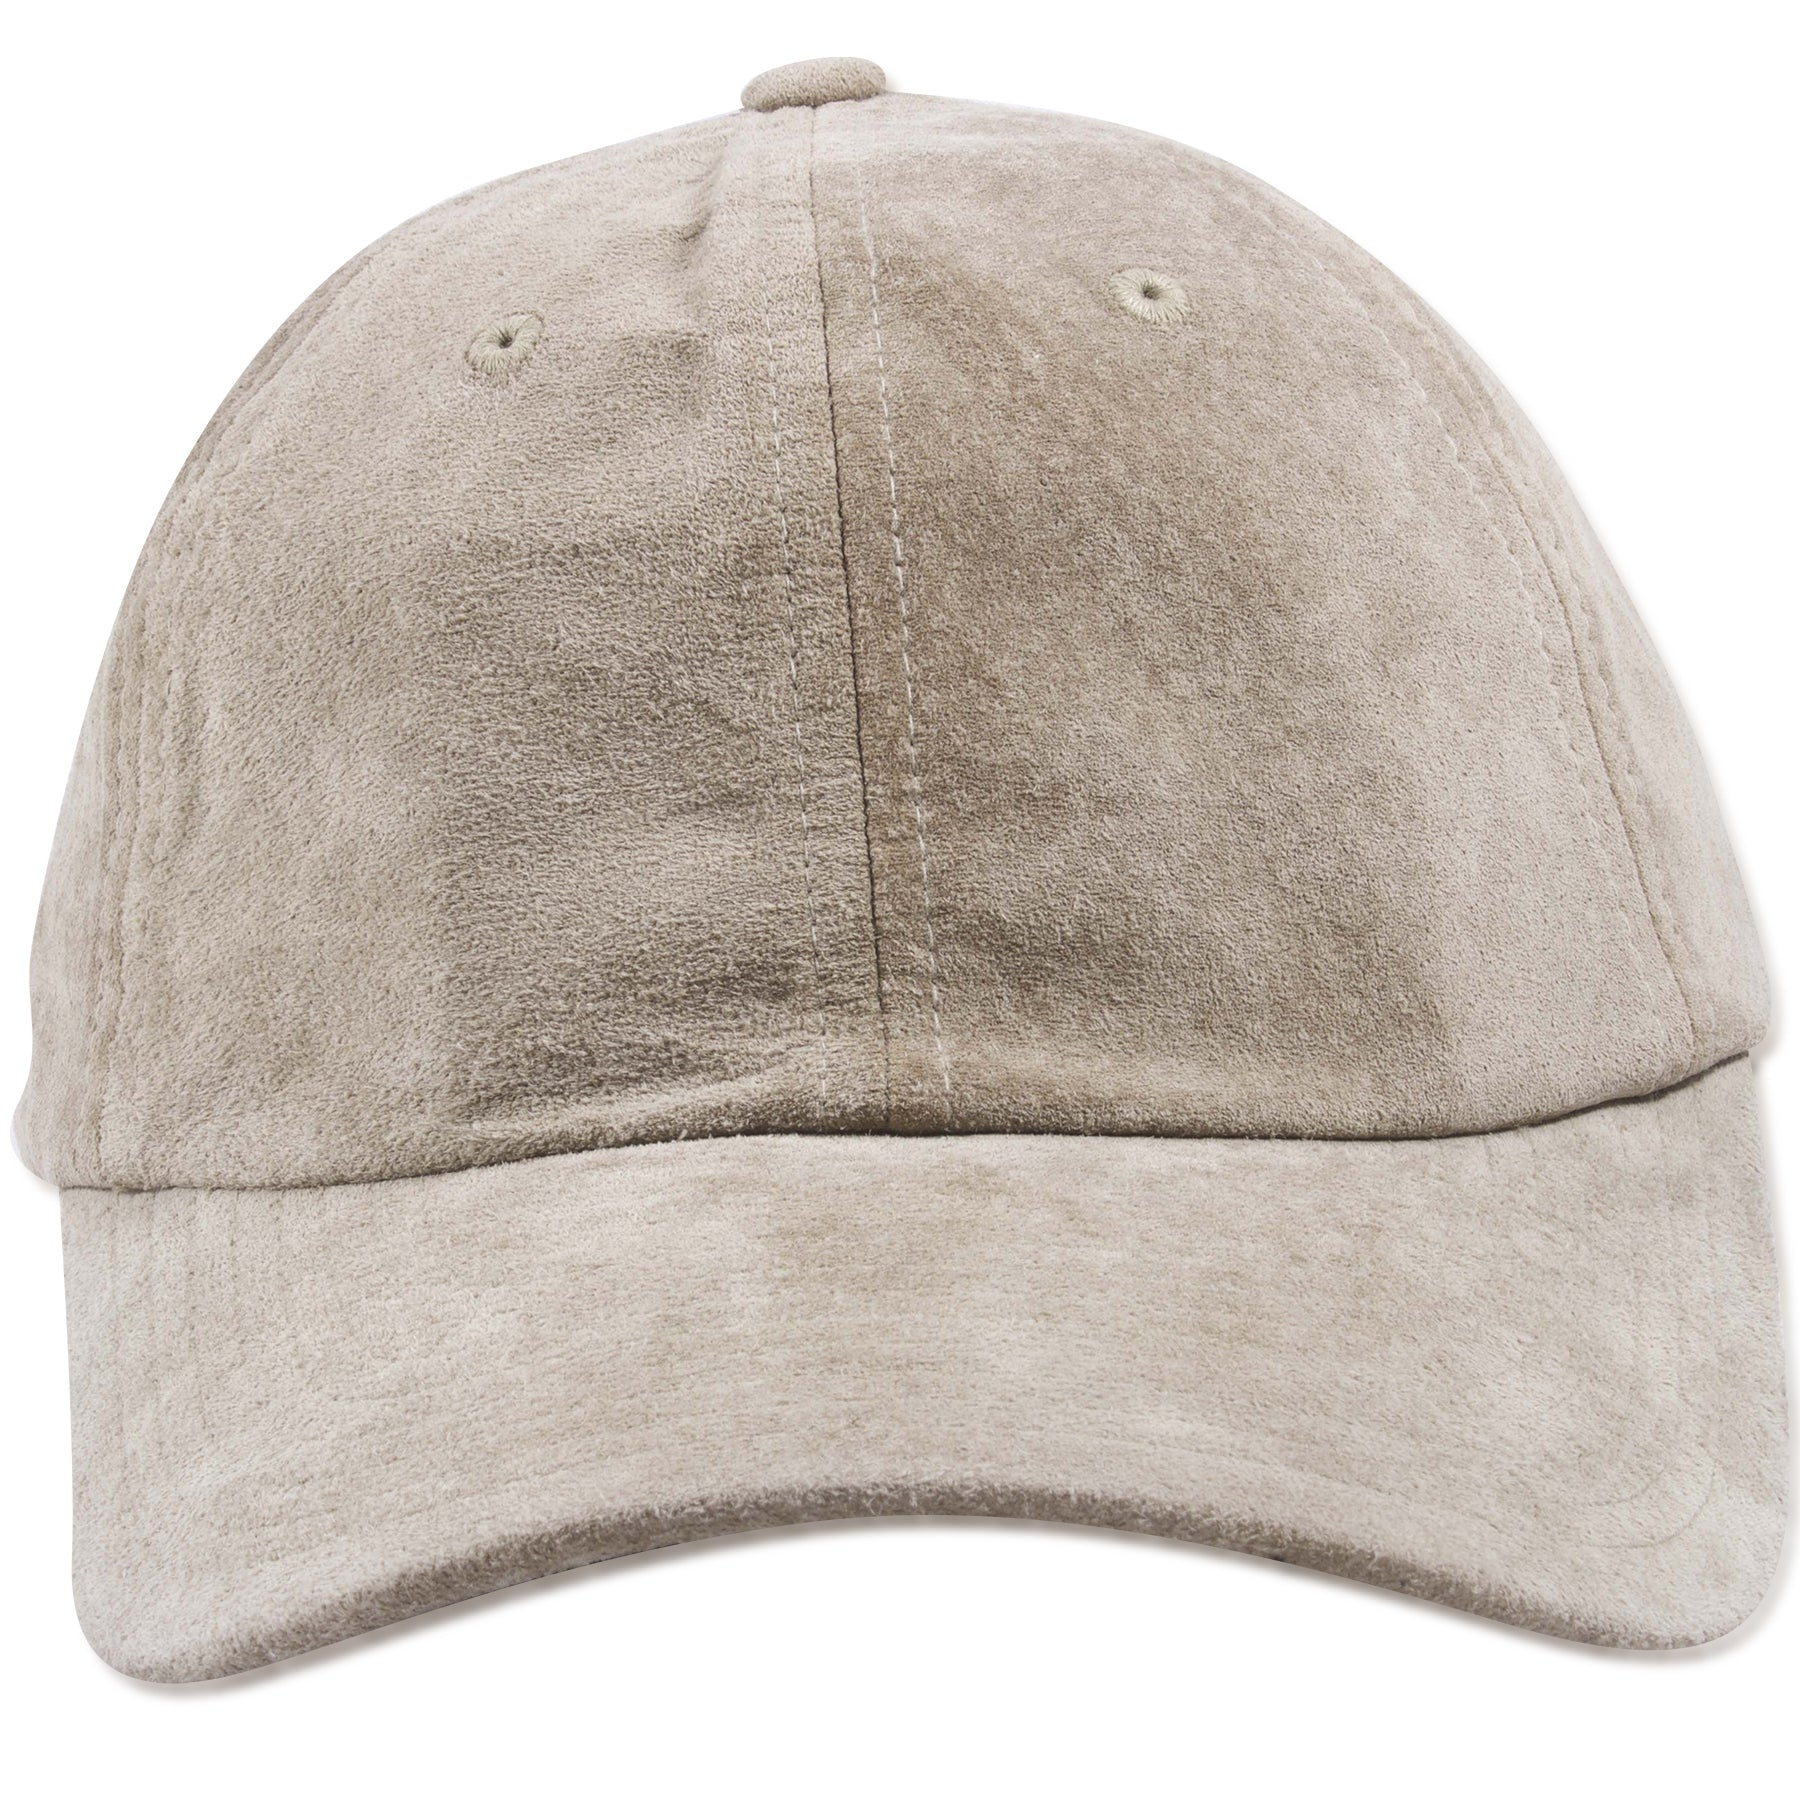 7914ad4c Mitchell and Ness Light Brown Suede Blank Adjustable Dad Hat – Cap Swag